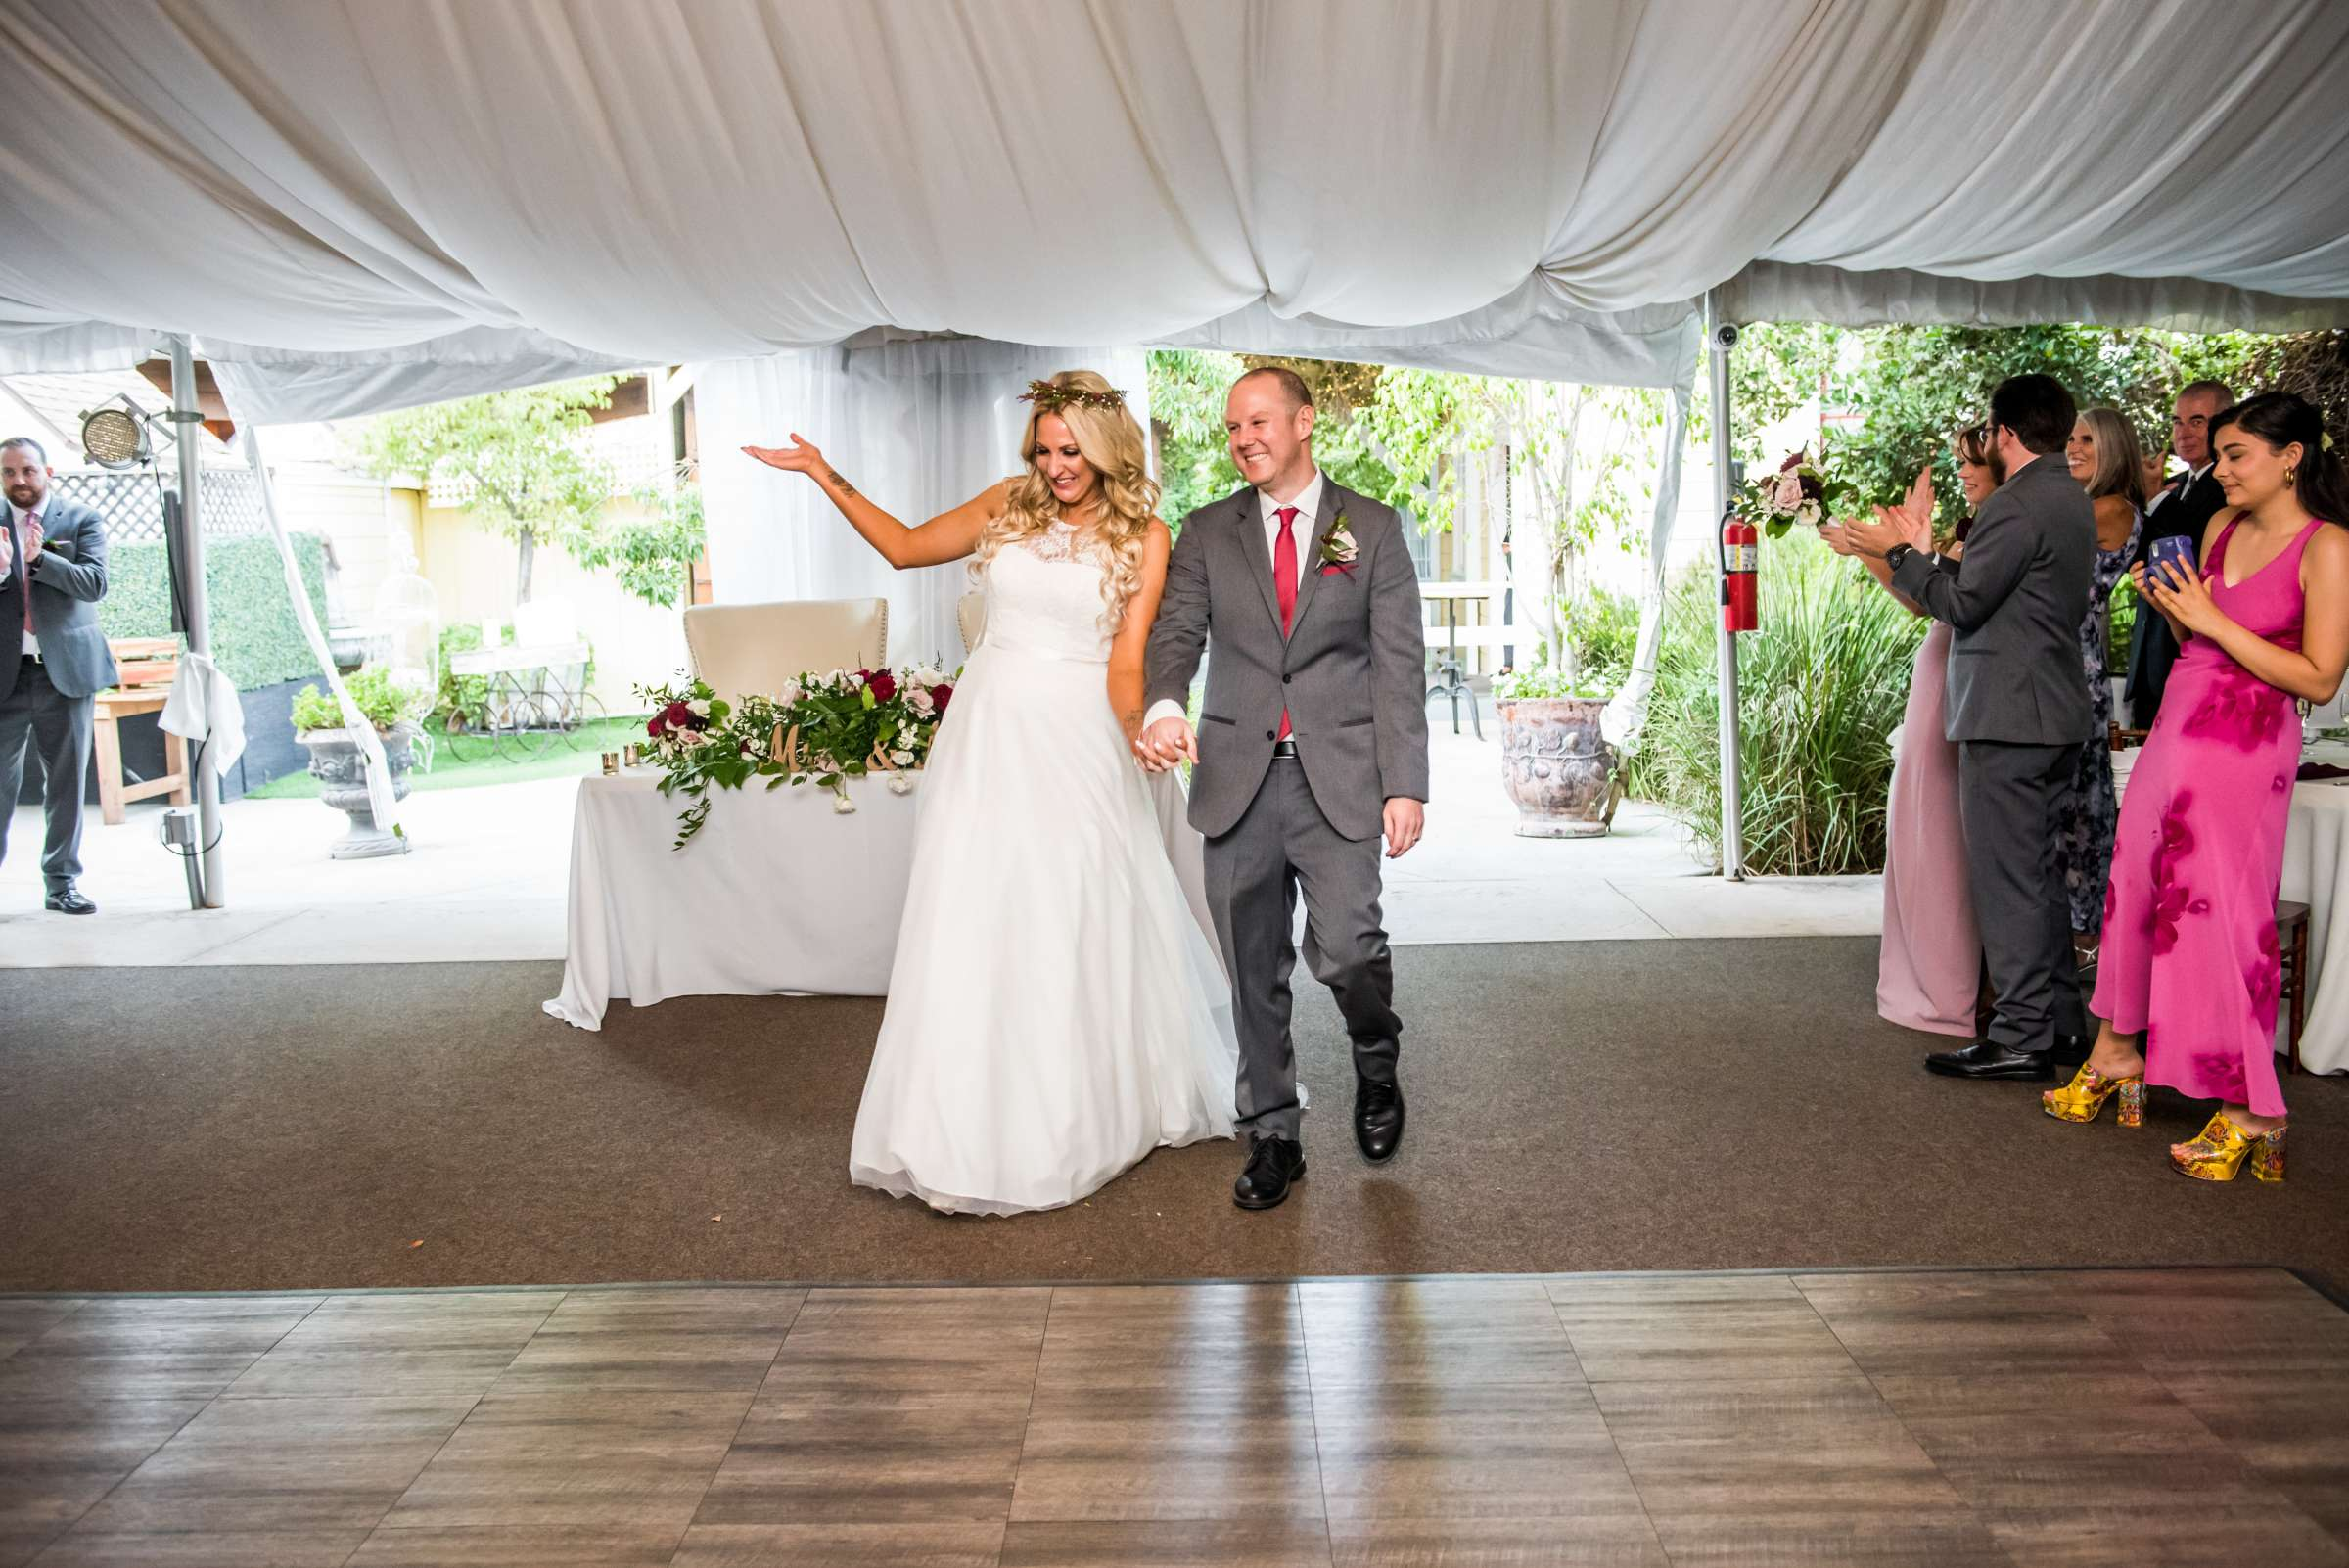 Twin Oaks House & Gardens Wedding Estate Wedding, Brittany and Sean Wedding Photo #108 by True Photography